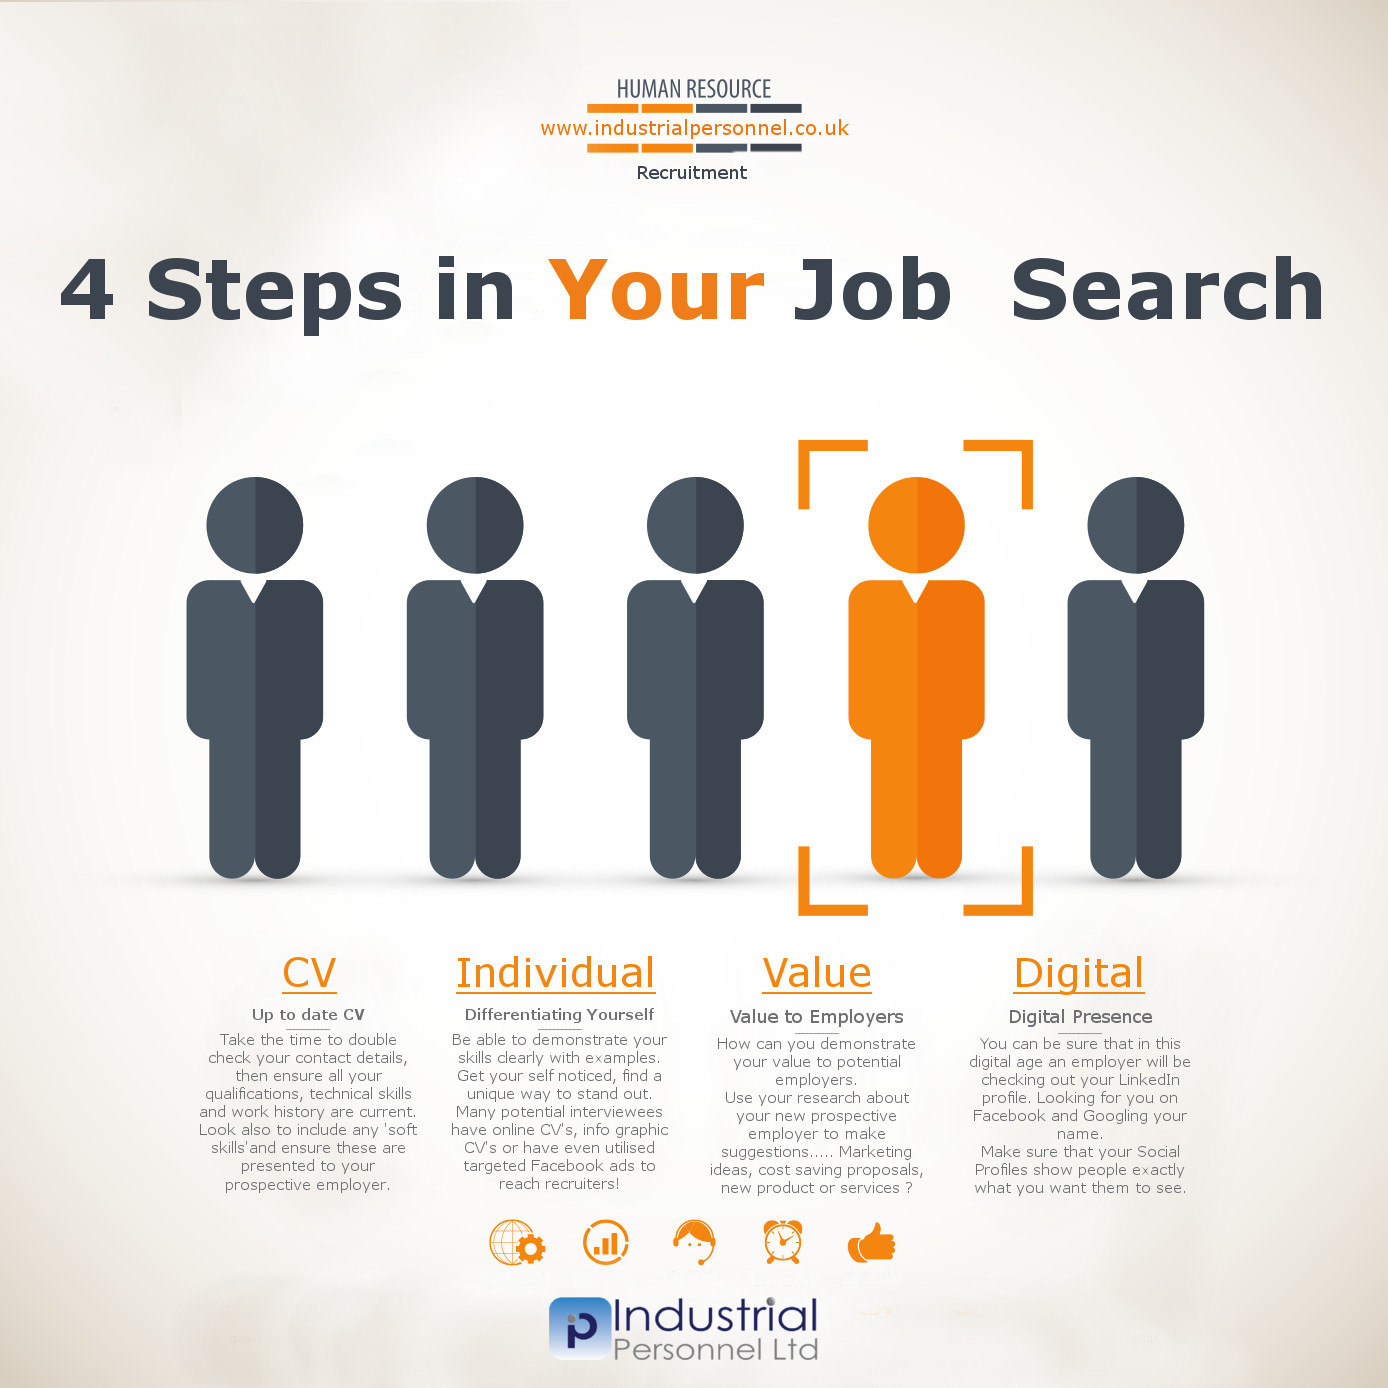 Job Hunting Advice 4 Steps to Your Job Search